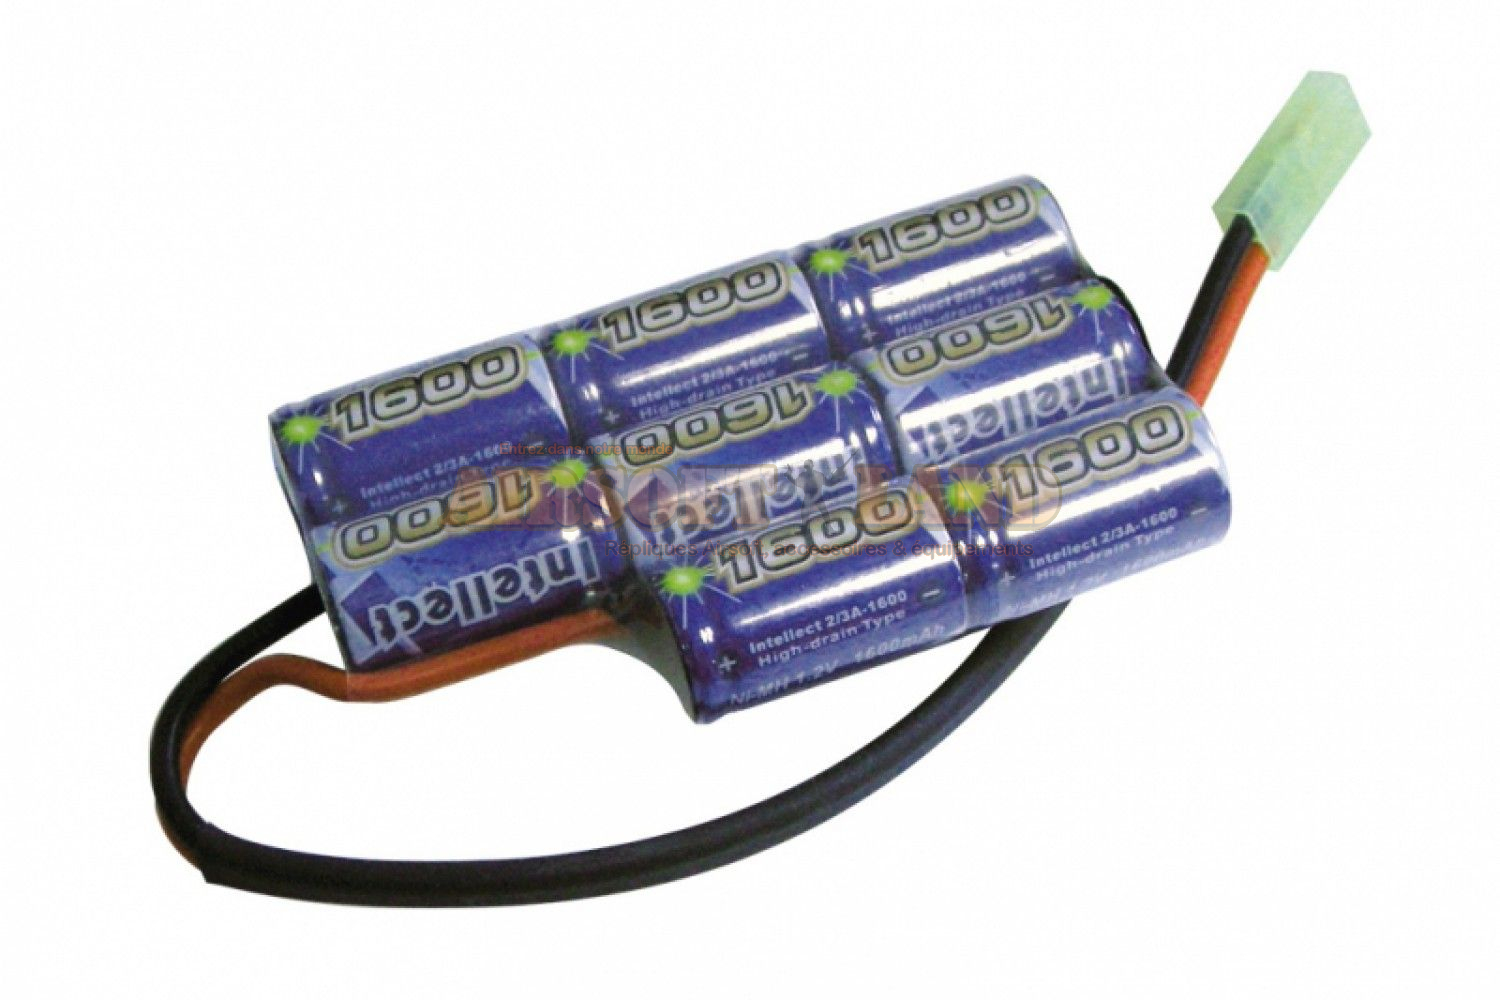 batterie Intellect 9.6/1600 boitier PEQ